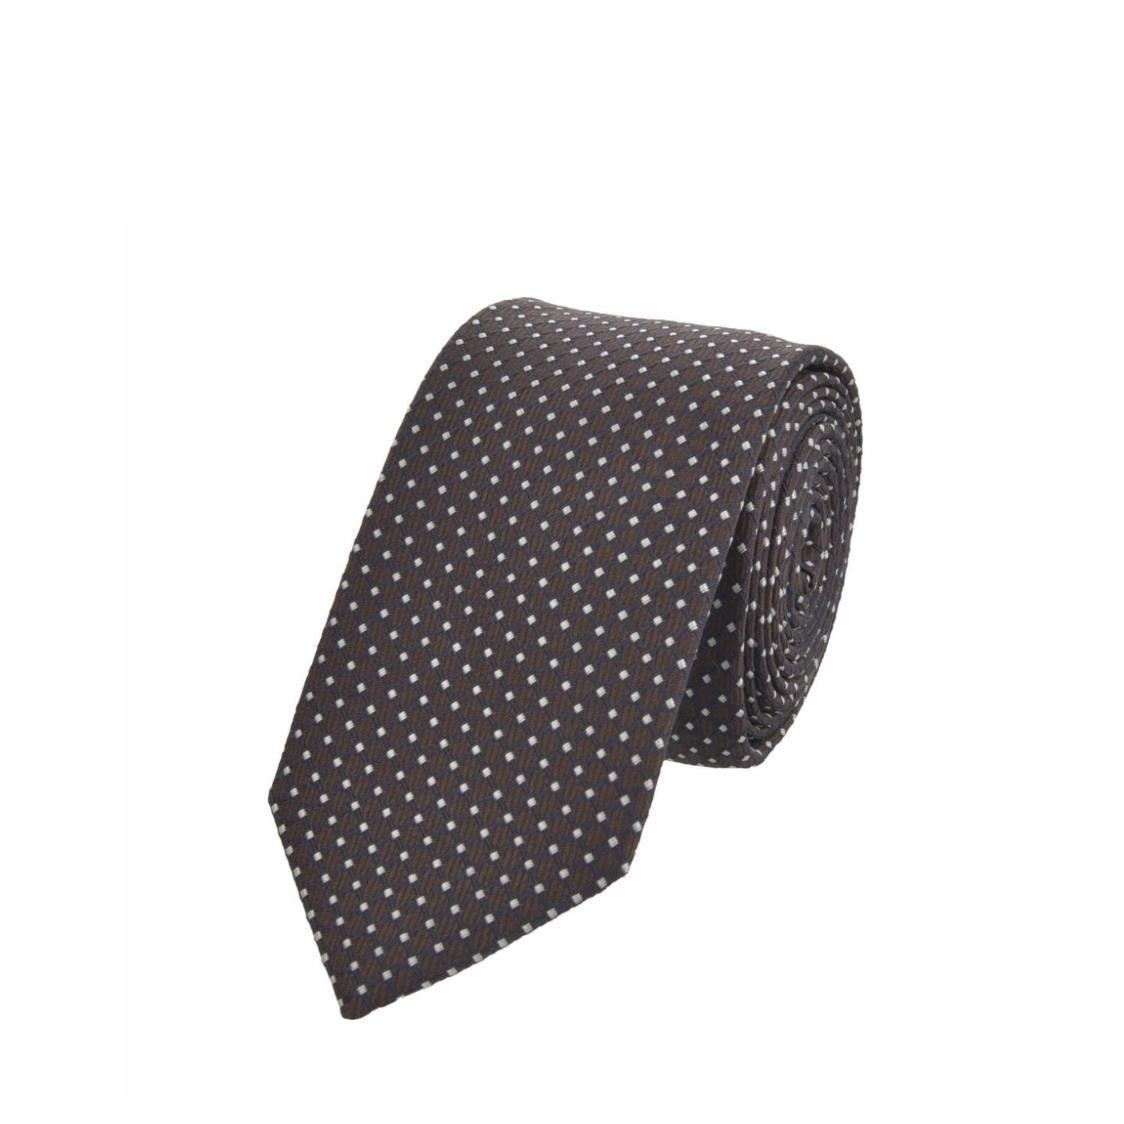 Jacquard Silk Tie In Navy with White Square